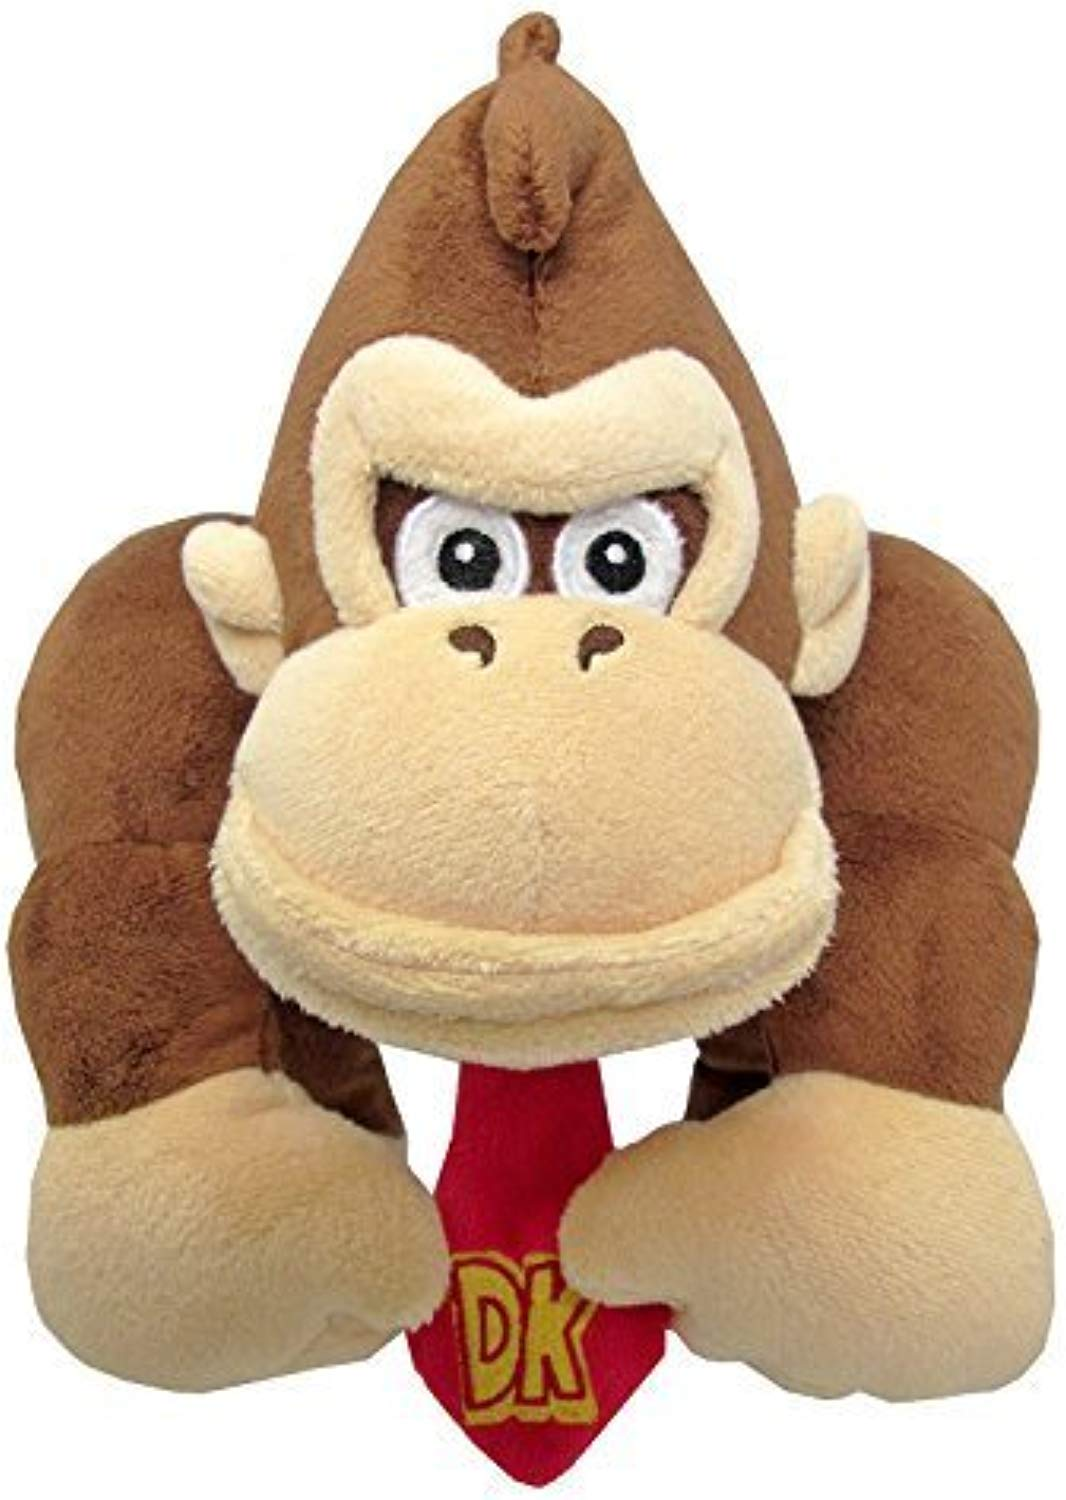 Sanei Super Mario tutti estrella Collection AC20 Don ave Kong 8 Plush by Sanei